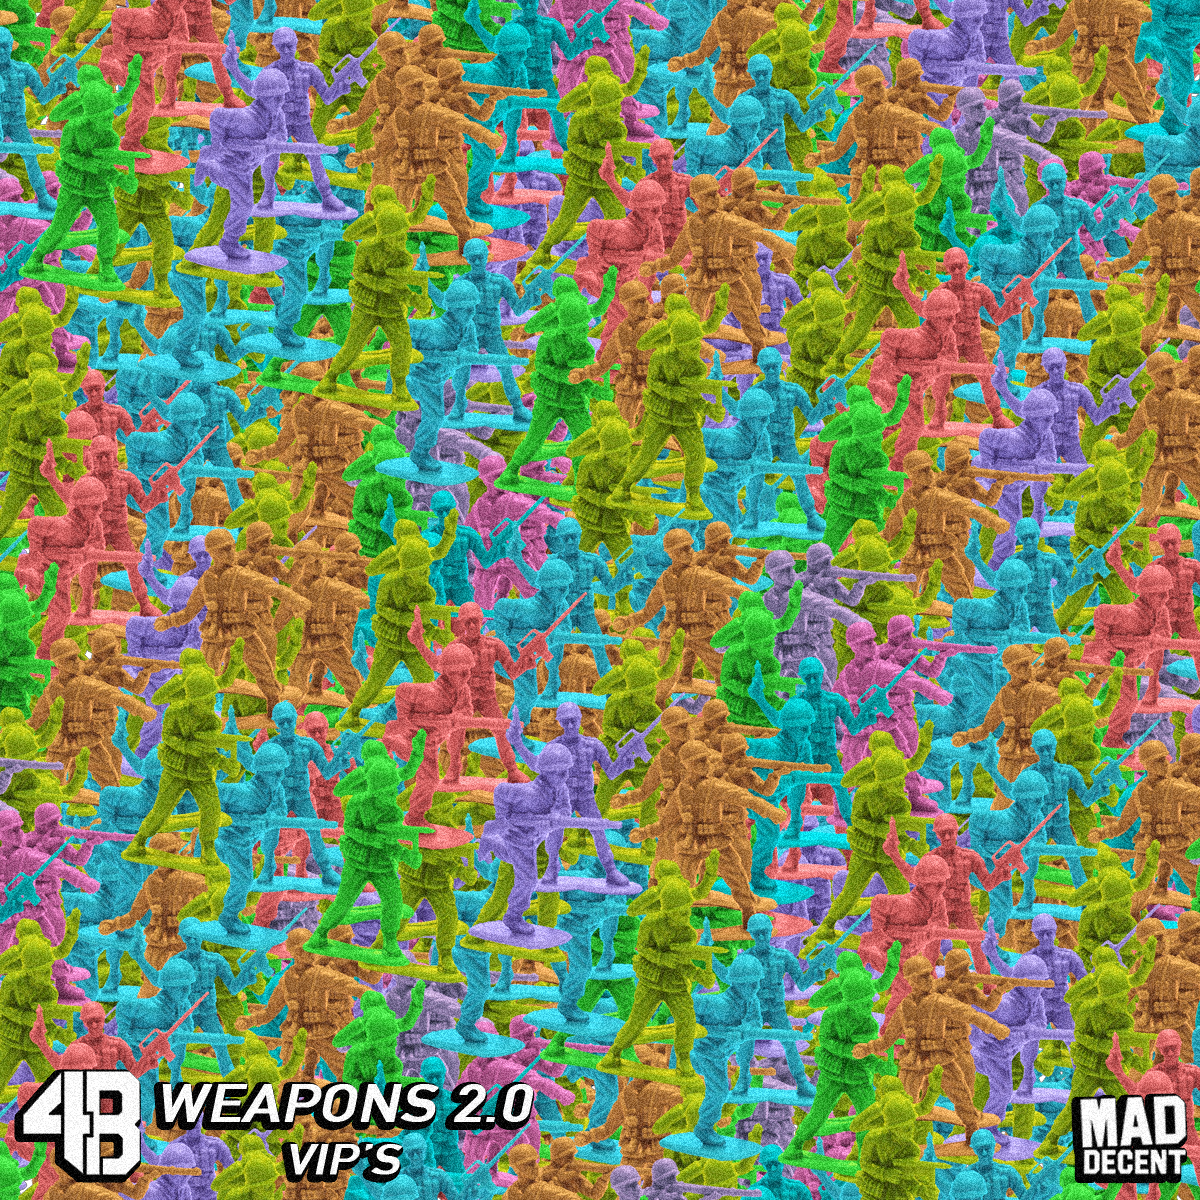 4B - Weapons 2 0 (VIP's) by Mad Decent - Free download on